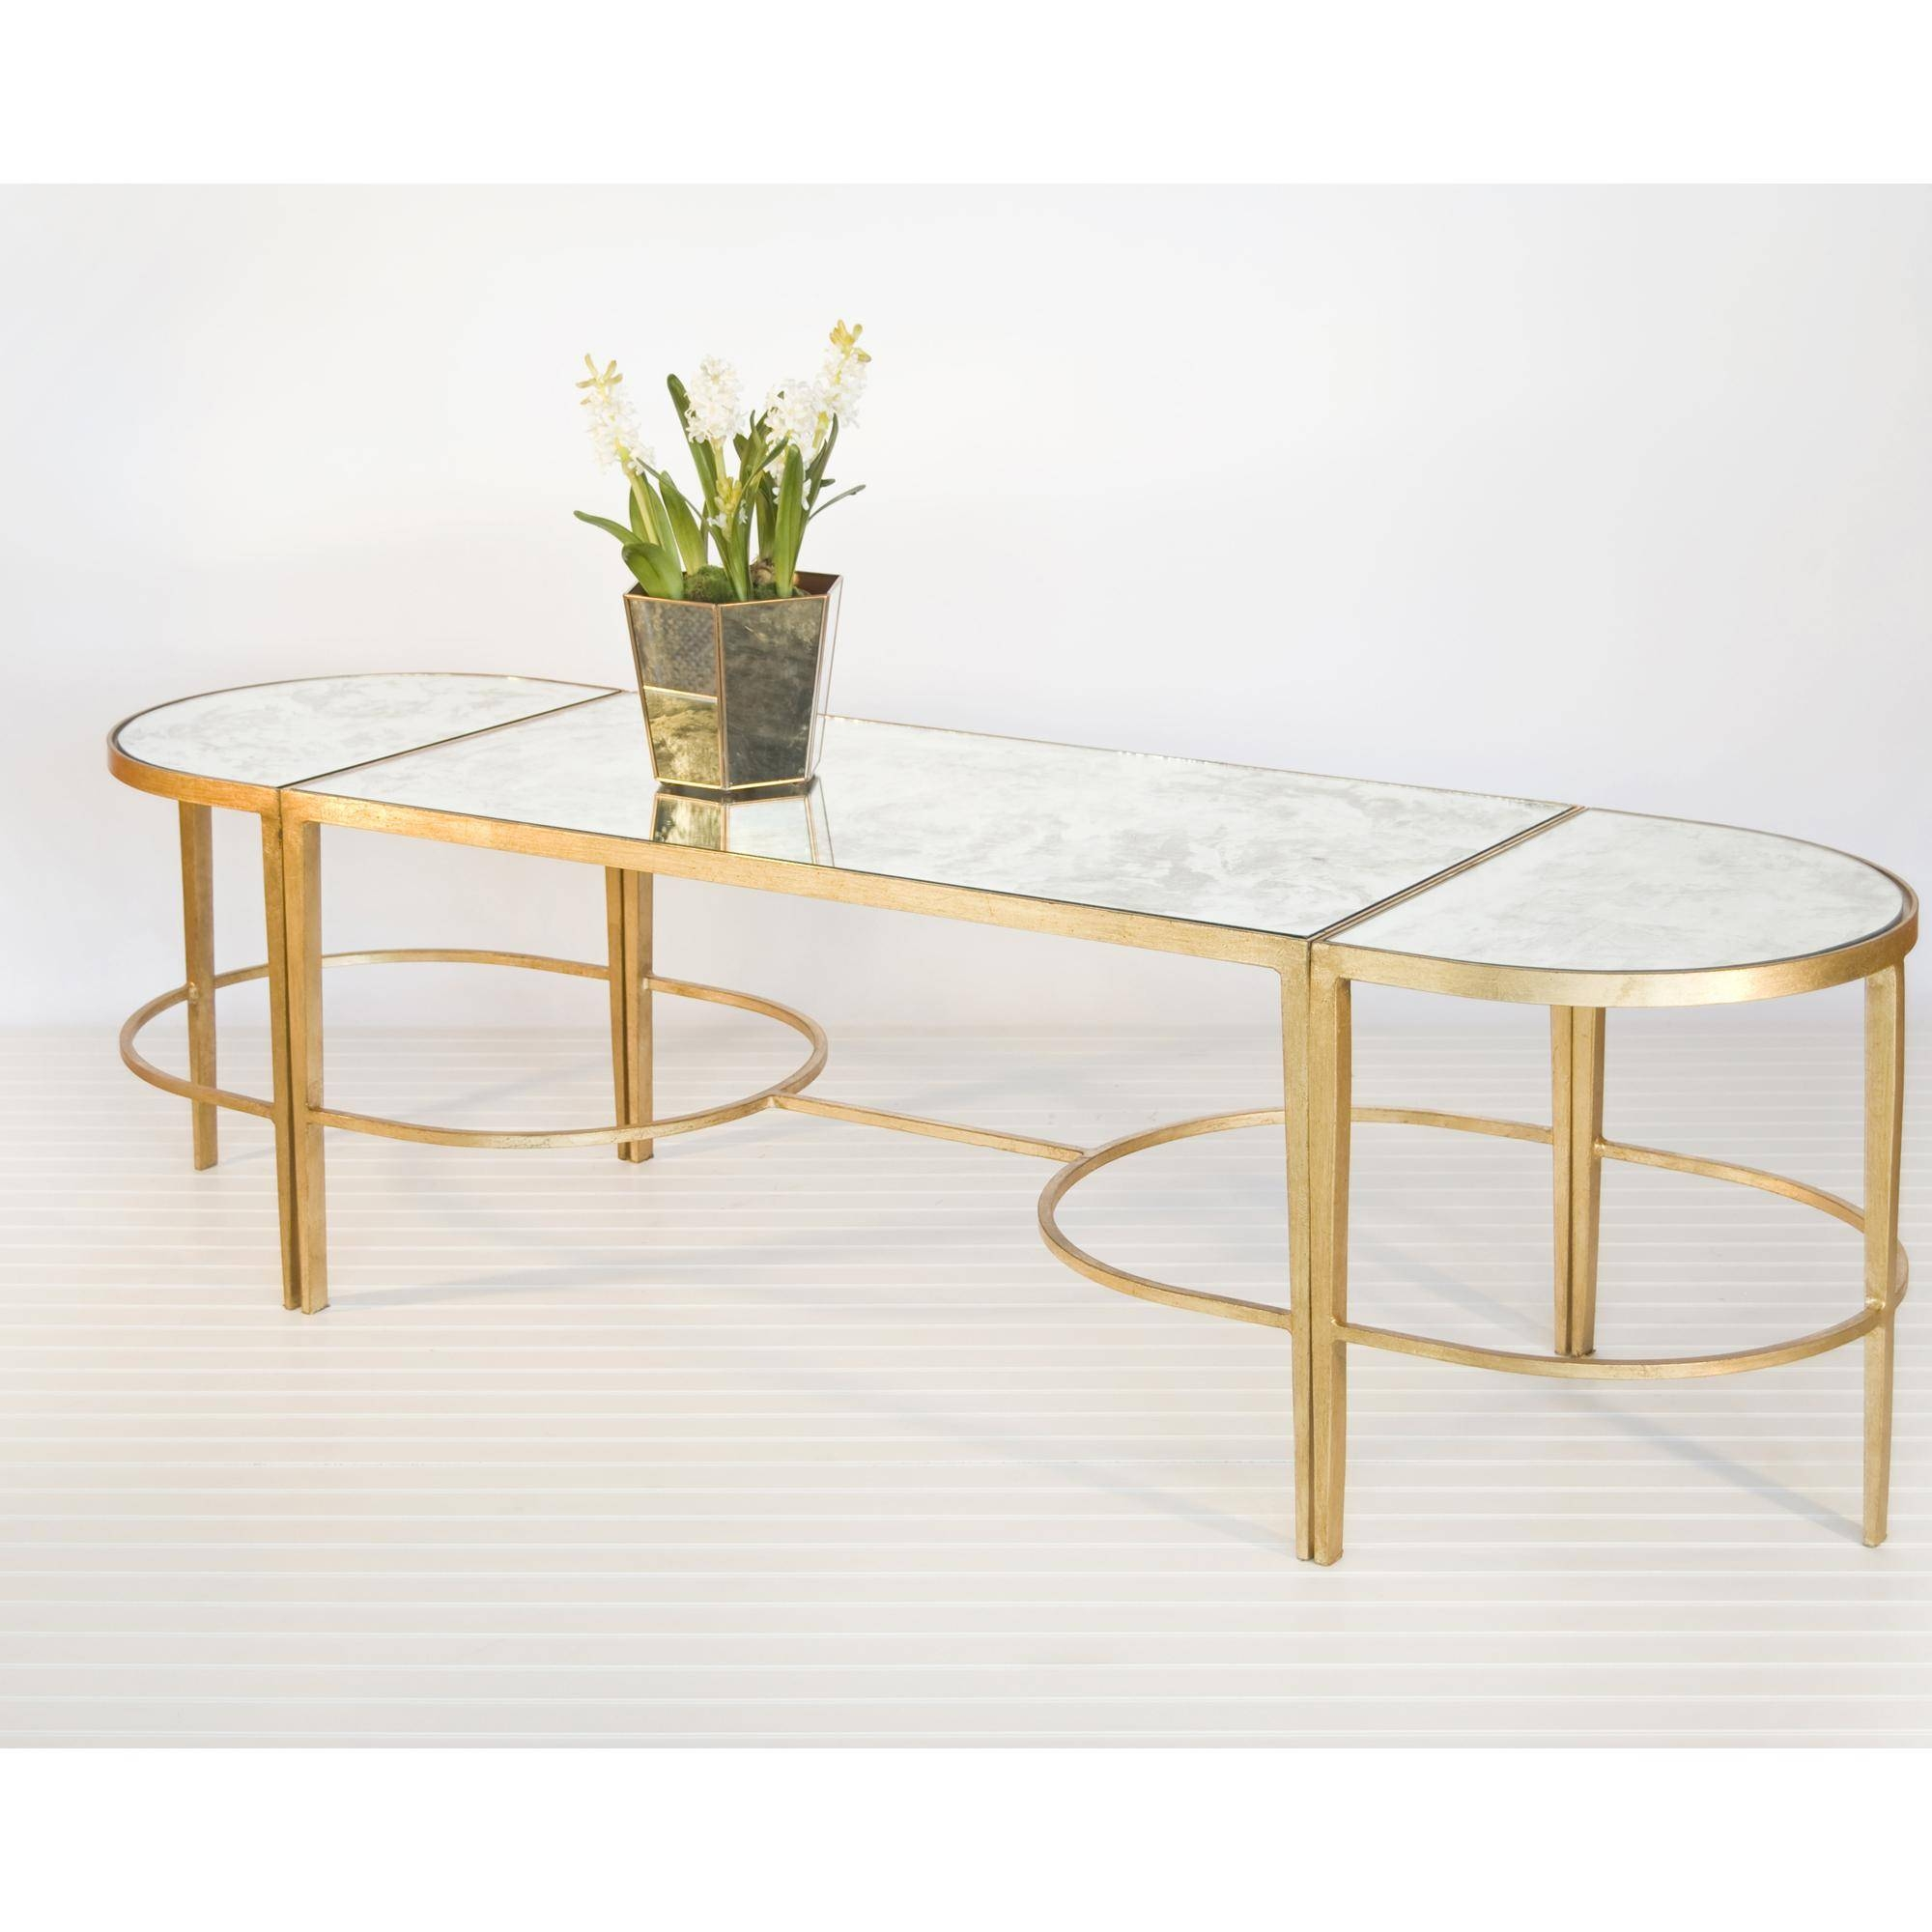 Furniture: Excellent Retro Classic Mirrored Coffee Table With in Small Mirrored Coffee Tables (Image 10 of 30)